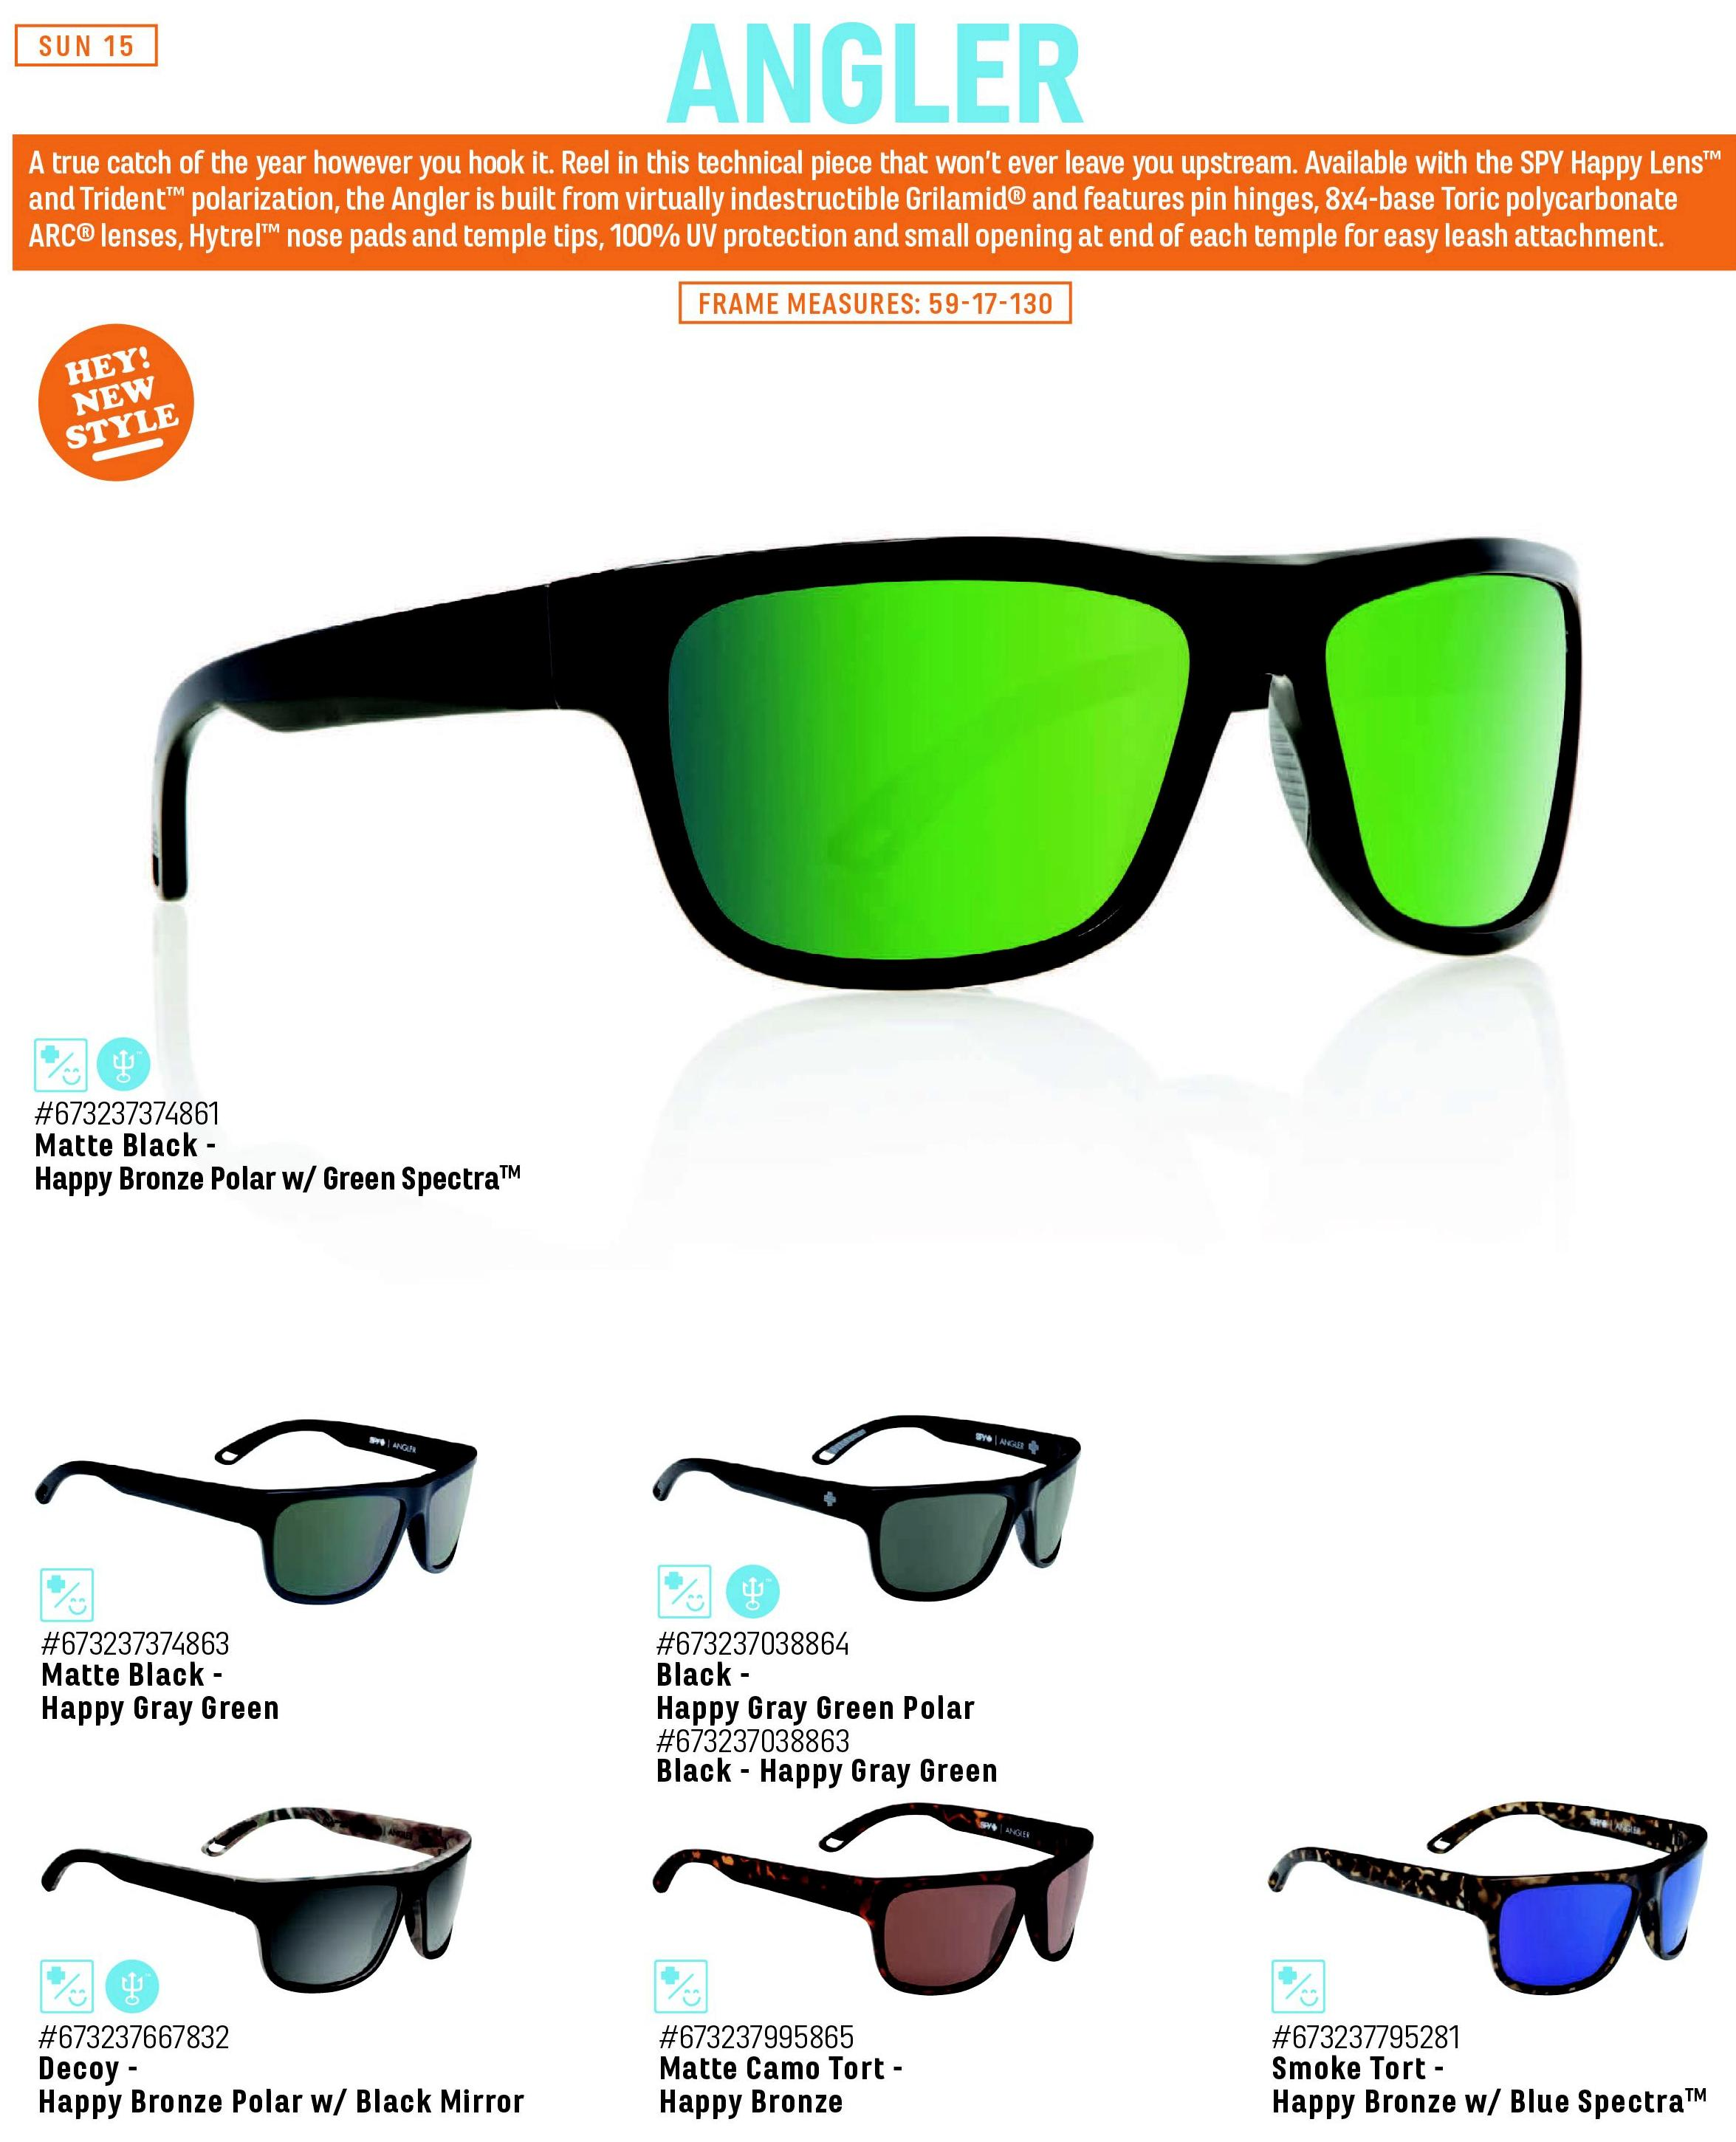 05aed5f500a Spy Angler Matte Black - Happy Bronze Polarized w Green Spectra